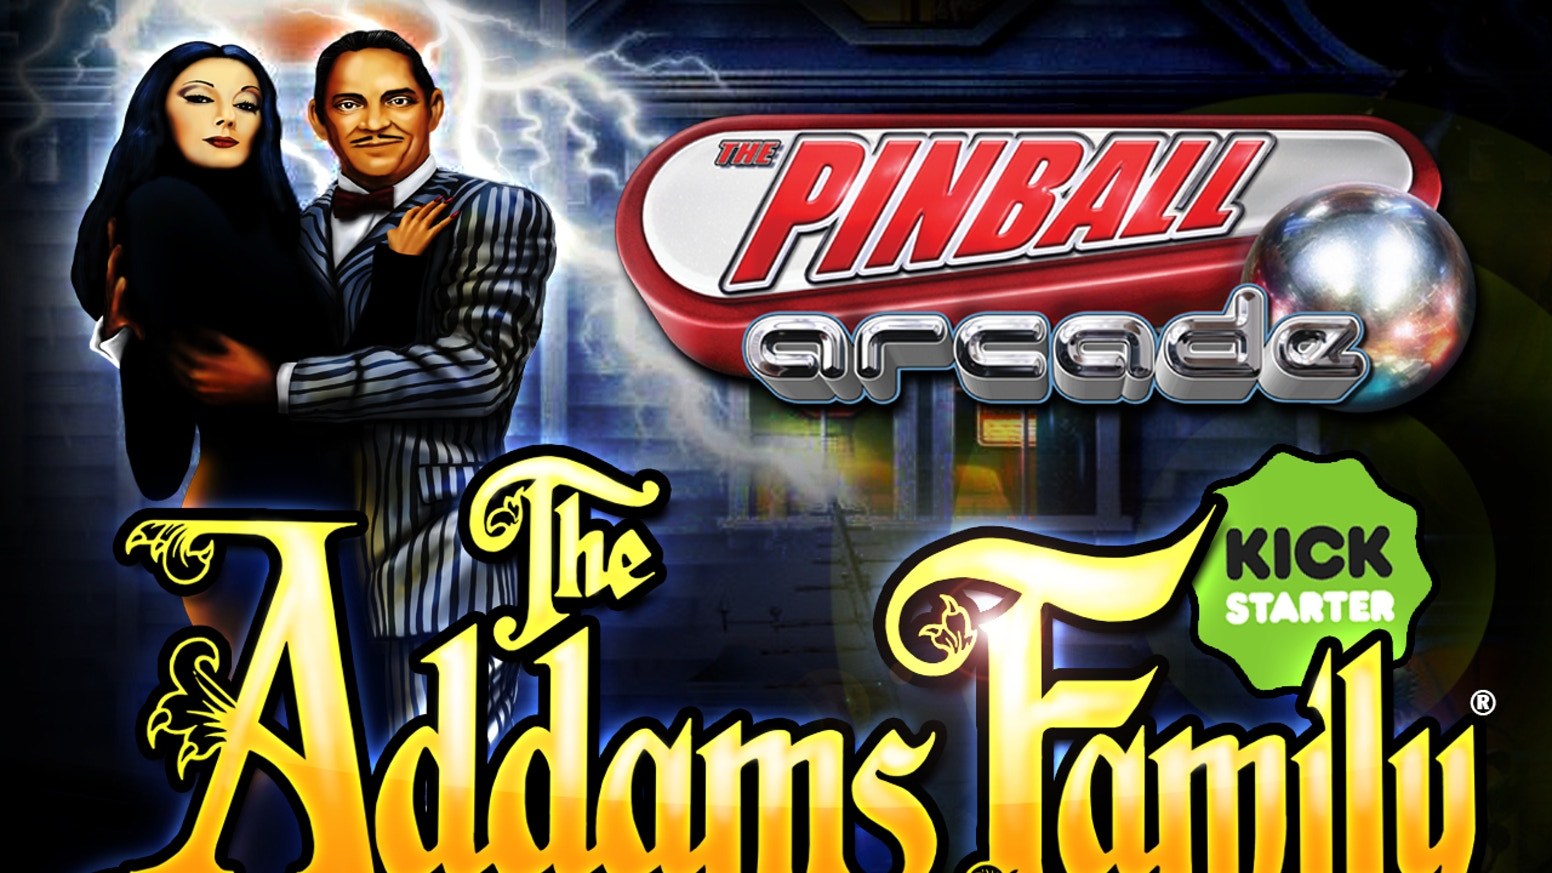 Help us bring The Addams Family® pinball table to game consoles and mobile devices for a whole new generation to enjoy!